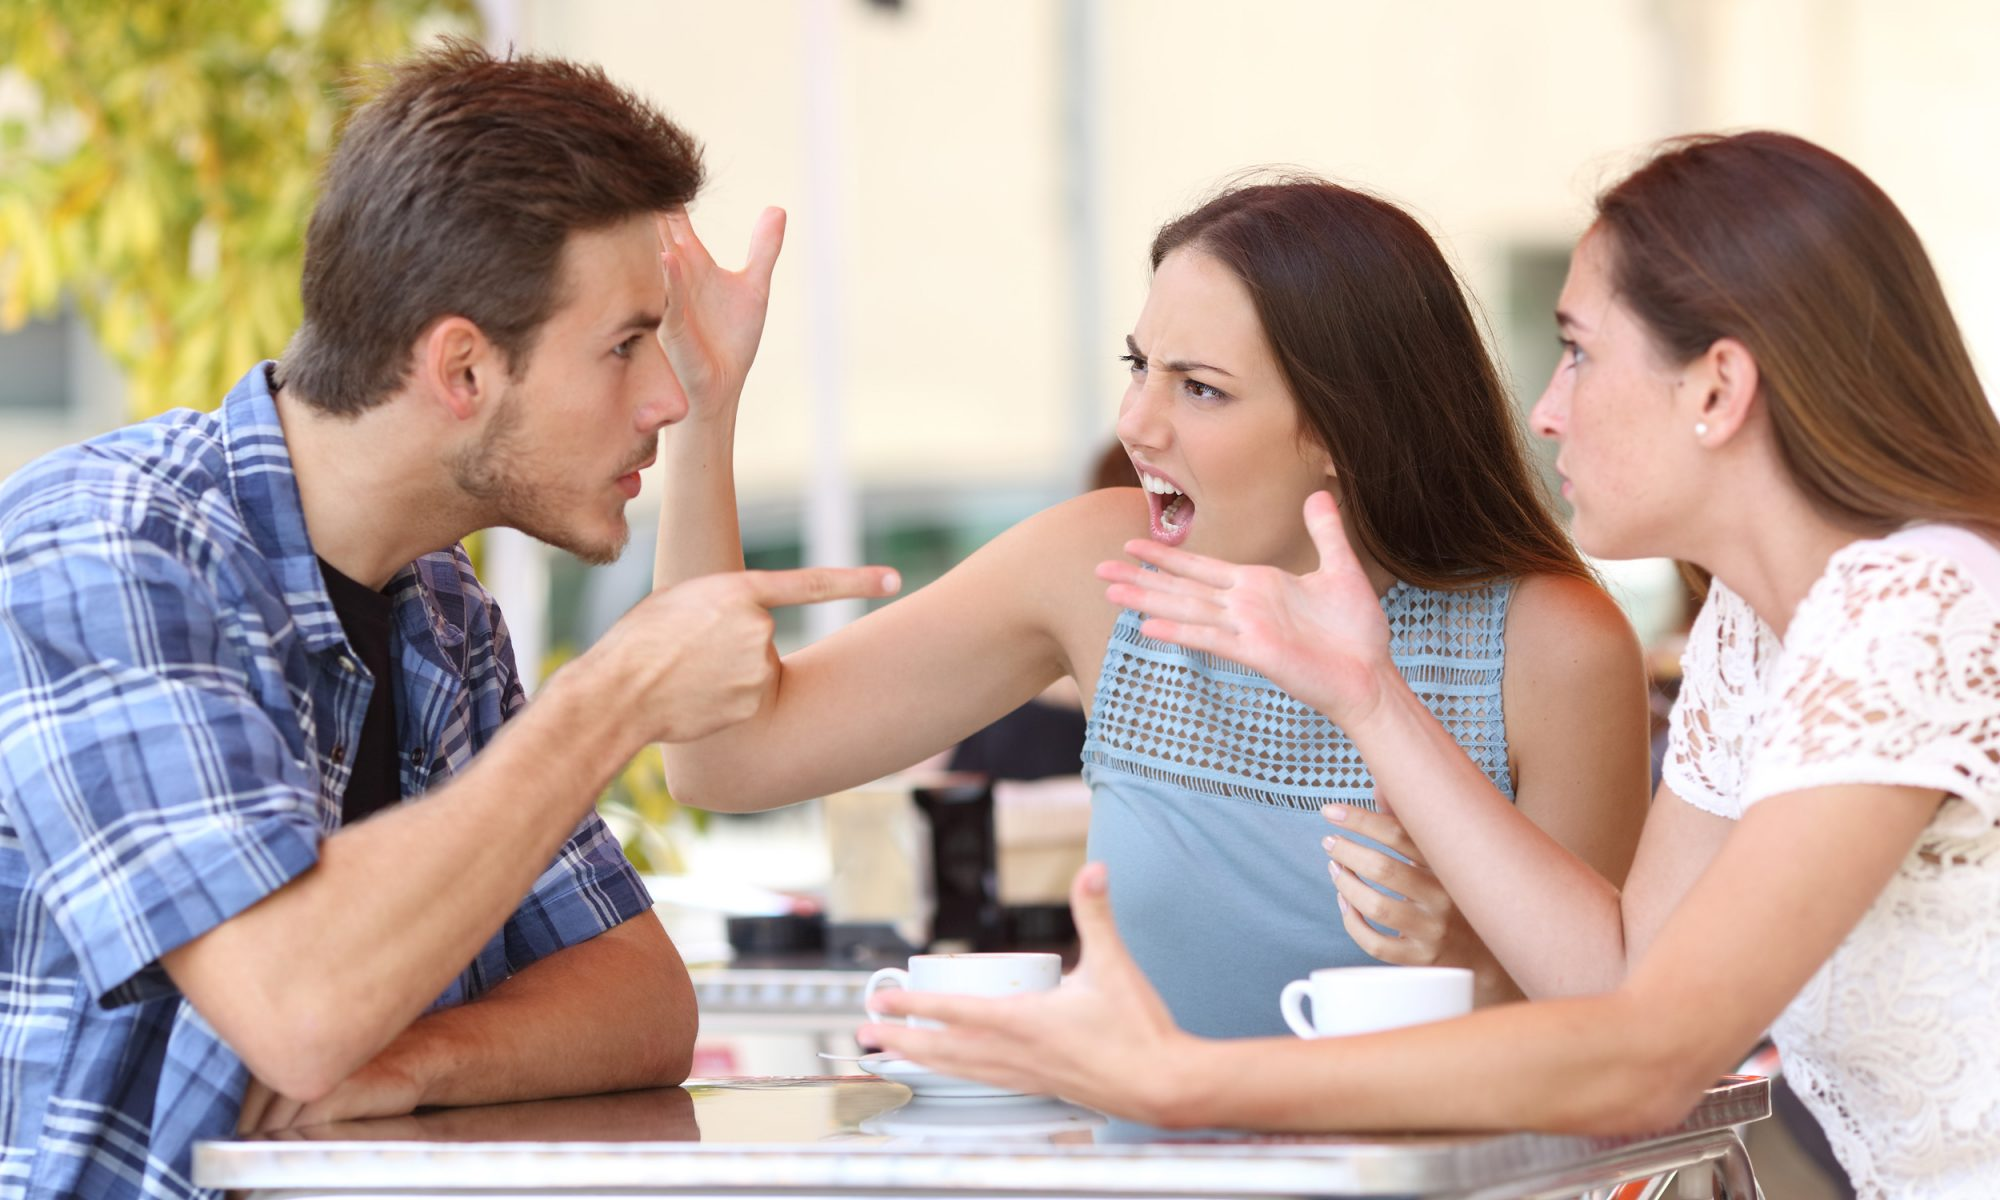 EC: How to Stop Being a Jerk at Brunch